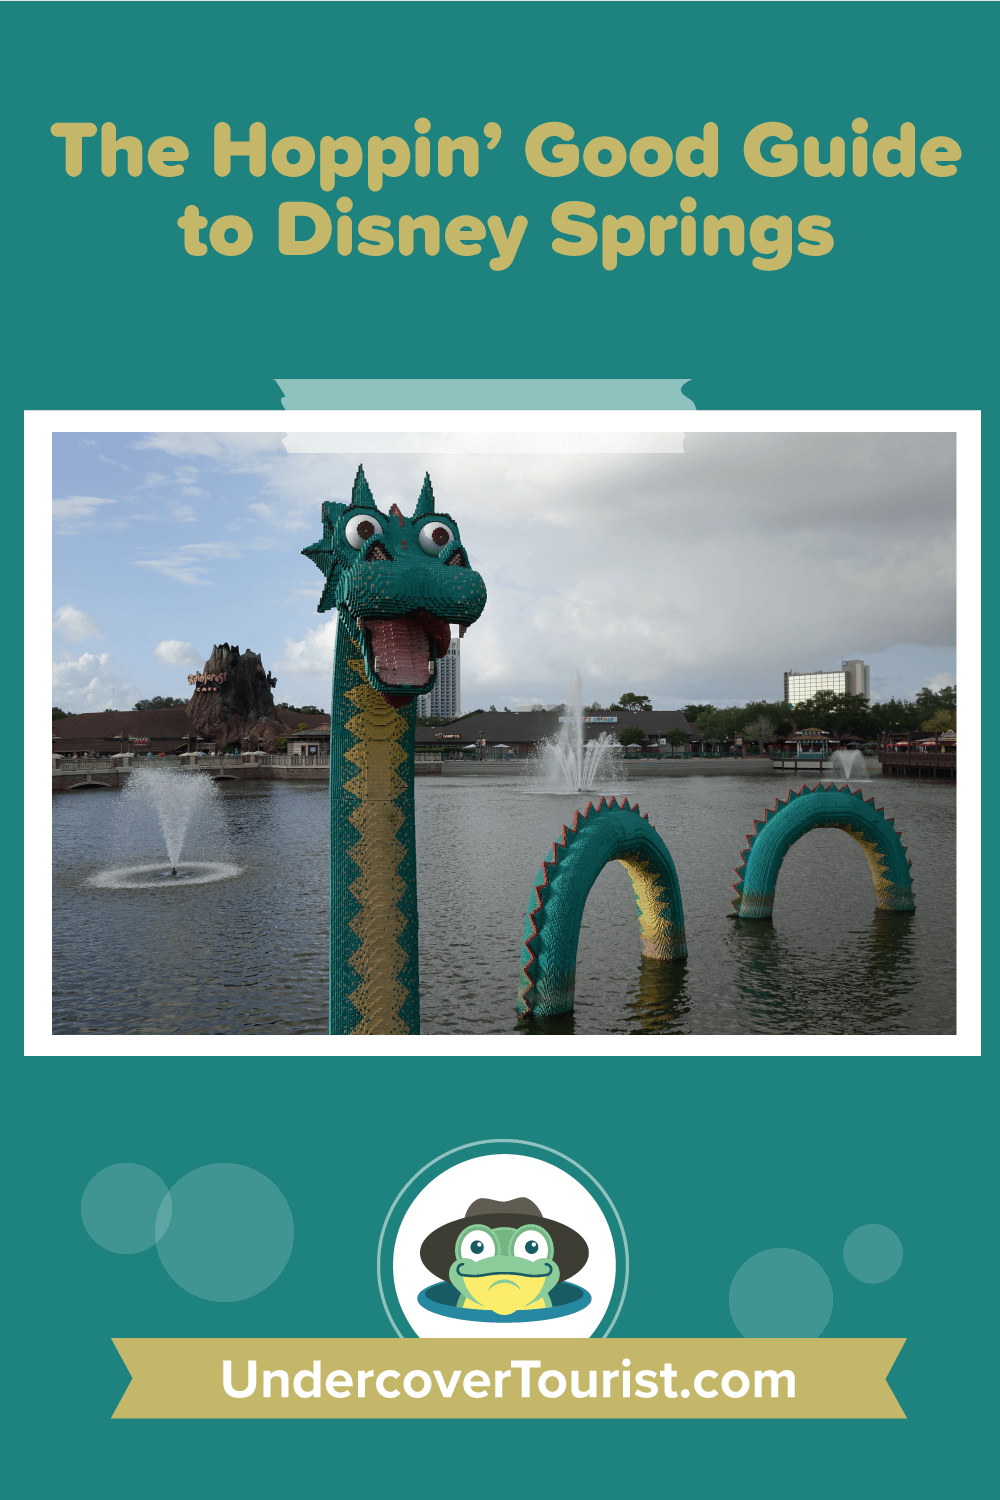 Hoppin' Good Guide to Disney Springs